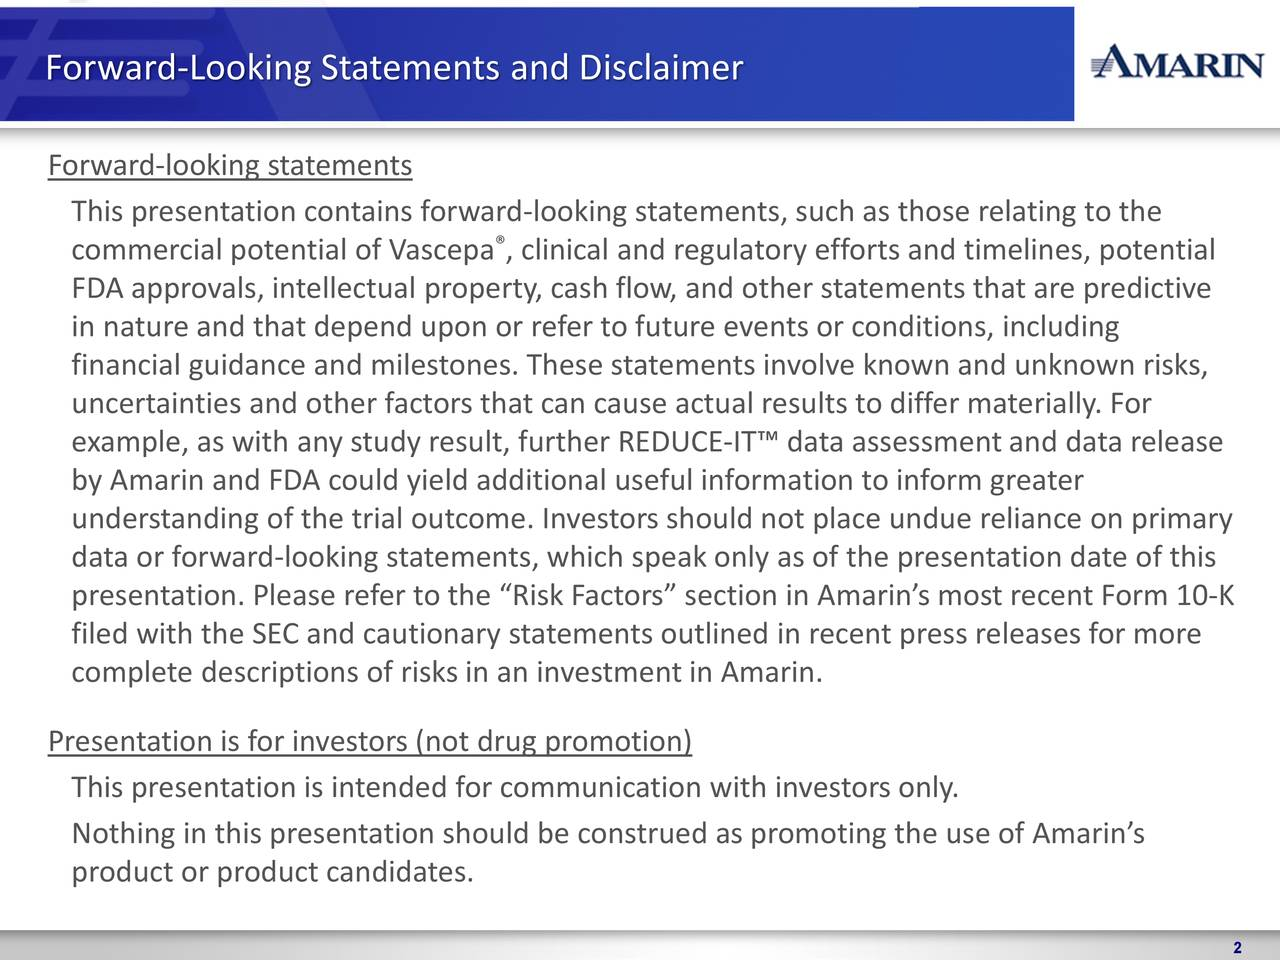 "Forward-looking statements This presentation contains forward-looking statements, such as those relating to the commercial potential of Vascepa , clinical and regulatory efforts and timelines, potential FDA approvals, intellectual property, cash flow, and other statements that are predictive in nature and that depend upon or refer to future events or conditions, including financial guidance and milestones. These statements involve known and unknown risks, uncertainties and other factors that can cause actual results to differ materially. For example, as with any study result, further REDUCE-IT™ data assessment and data release by Amarin and FDA could yield additional useful information to inform greater understanding of the trial outcome. Investors should not place undue reliance on primary data or forward-looking statements, which speak only as of the presentation date of this presentation. Please refer to the ""Risk Factors"" section in Amarin's most recent Form 10-K filed with the SEC and cautionary statements outlined in recent press releases for more complete descriptions of risks in an investment in Amarin. Presentation is for investors (not drug promotion) This presentation is intended for communication with investors only. Nothing in this presentation should be construed as promoting the use of Amarin's product or product candidates."